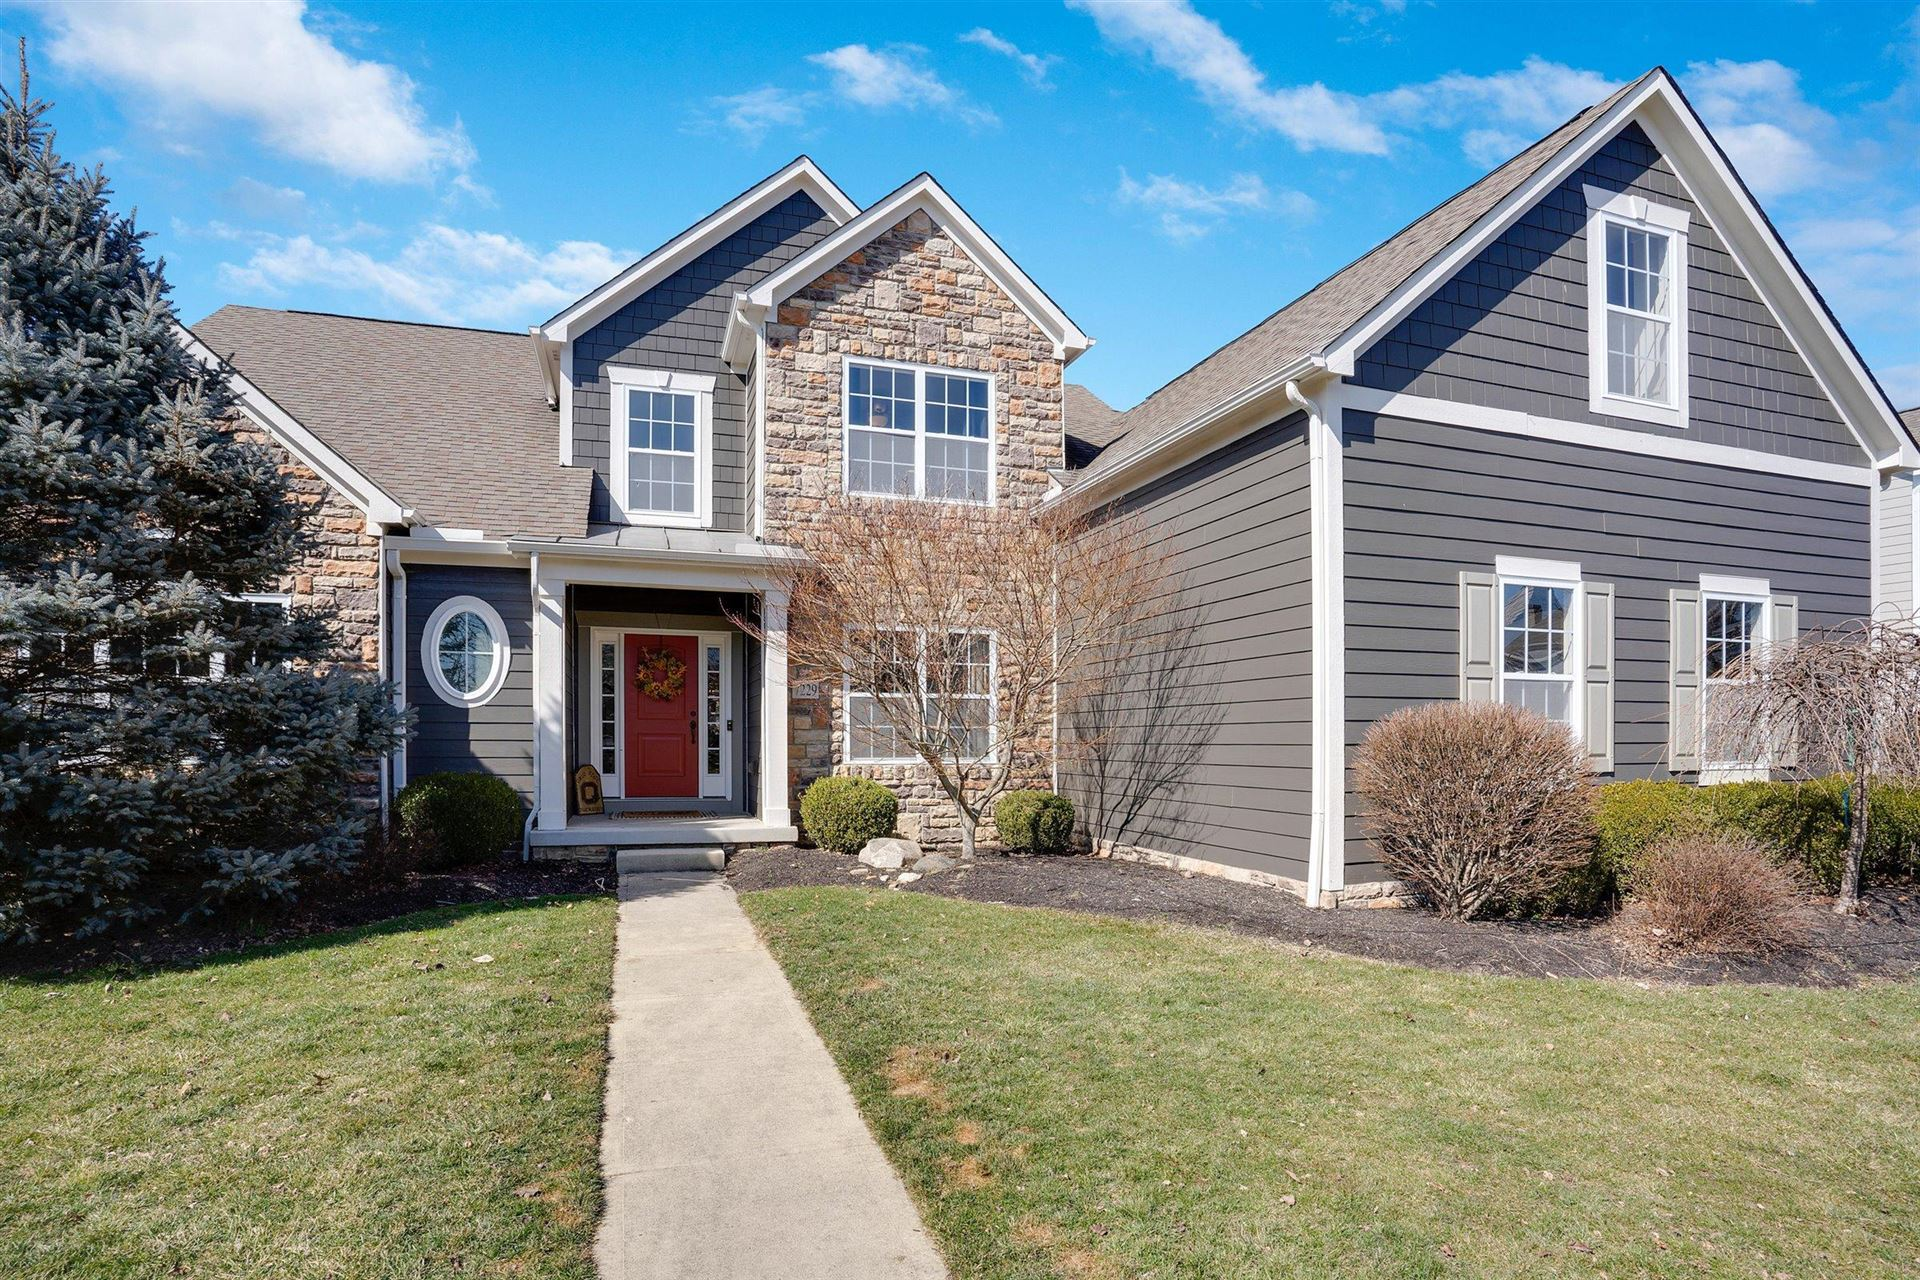 Photo for 7229 Talanth Place, New Albany, OH 43054 (MLS # 221006343)